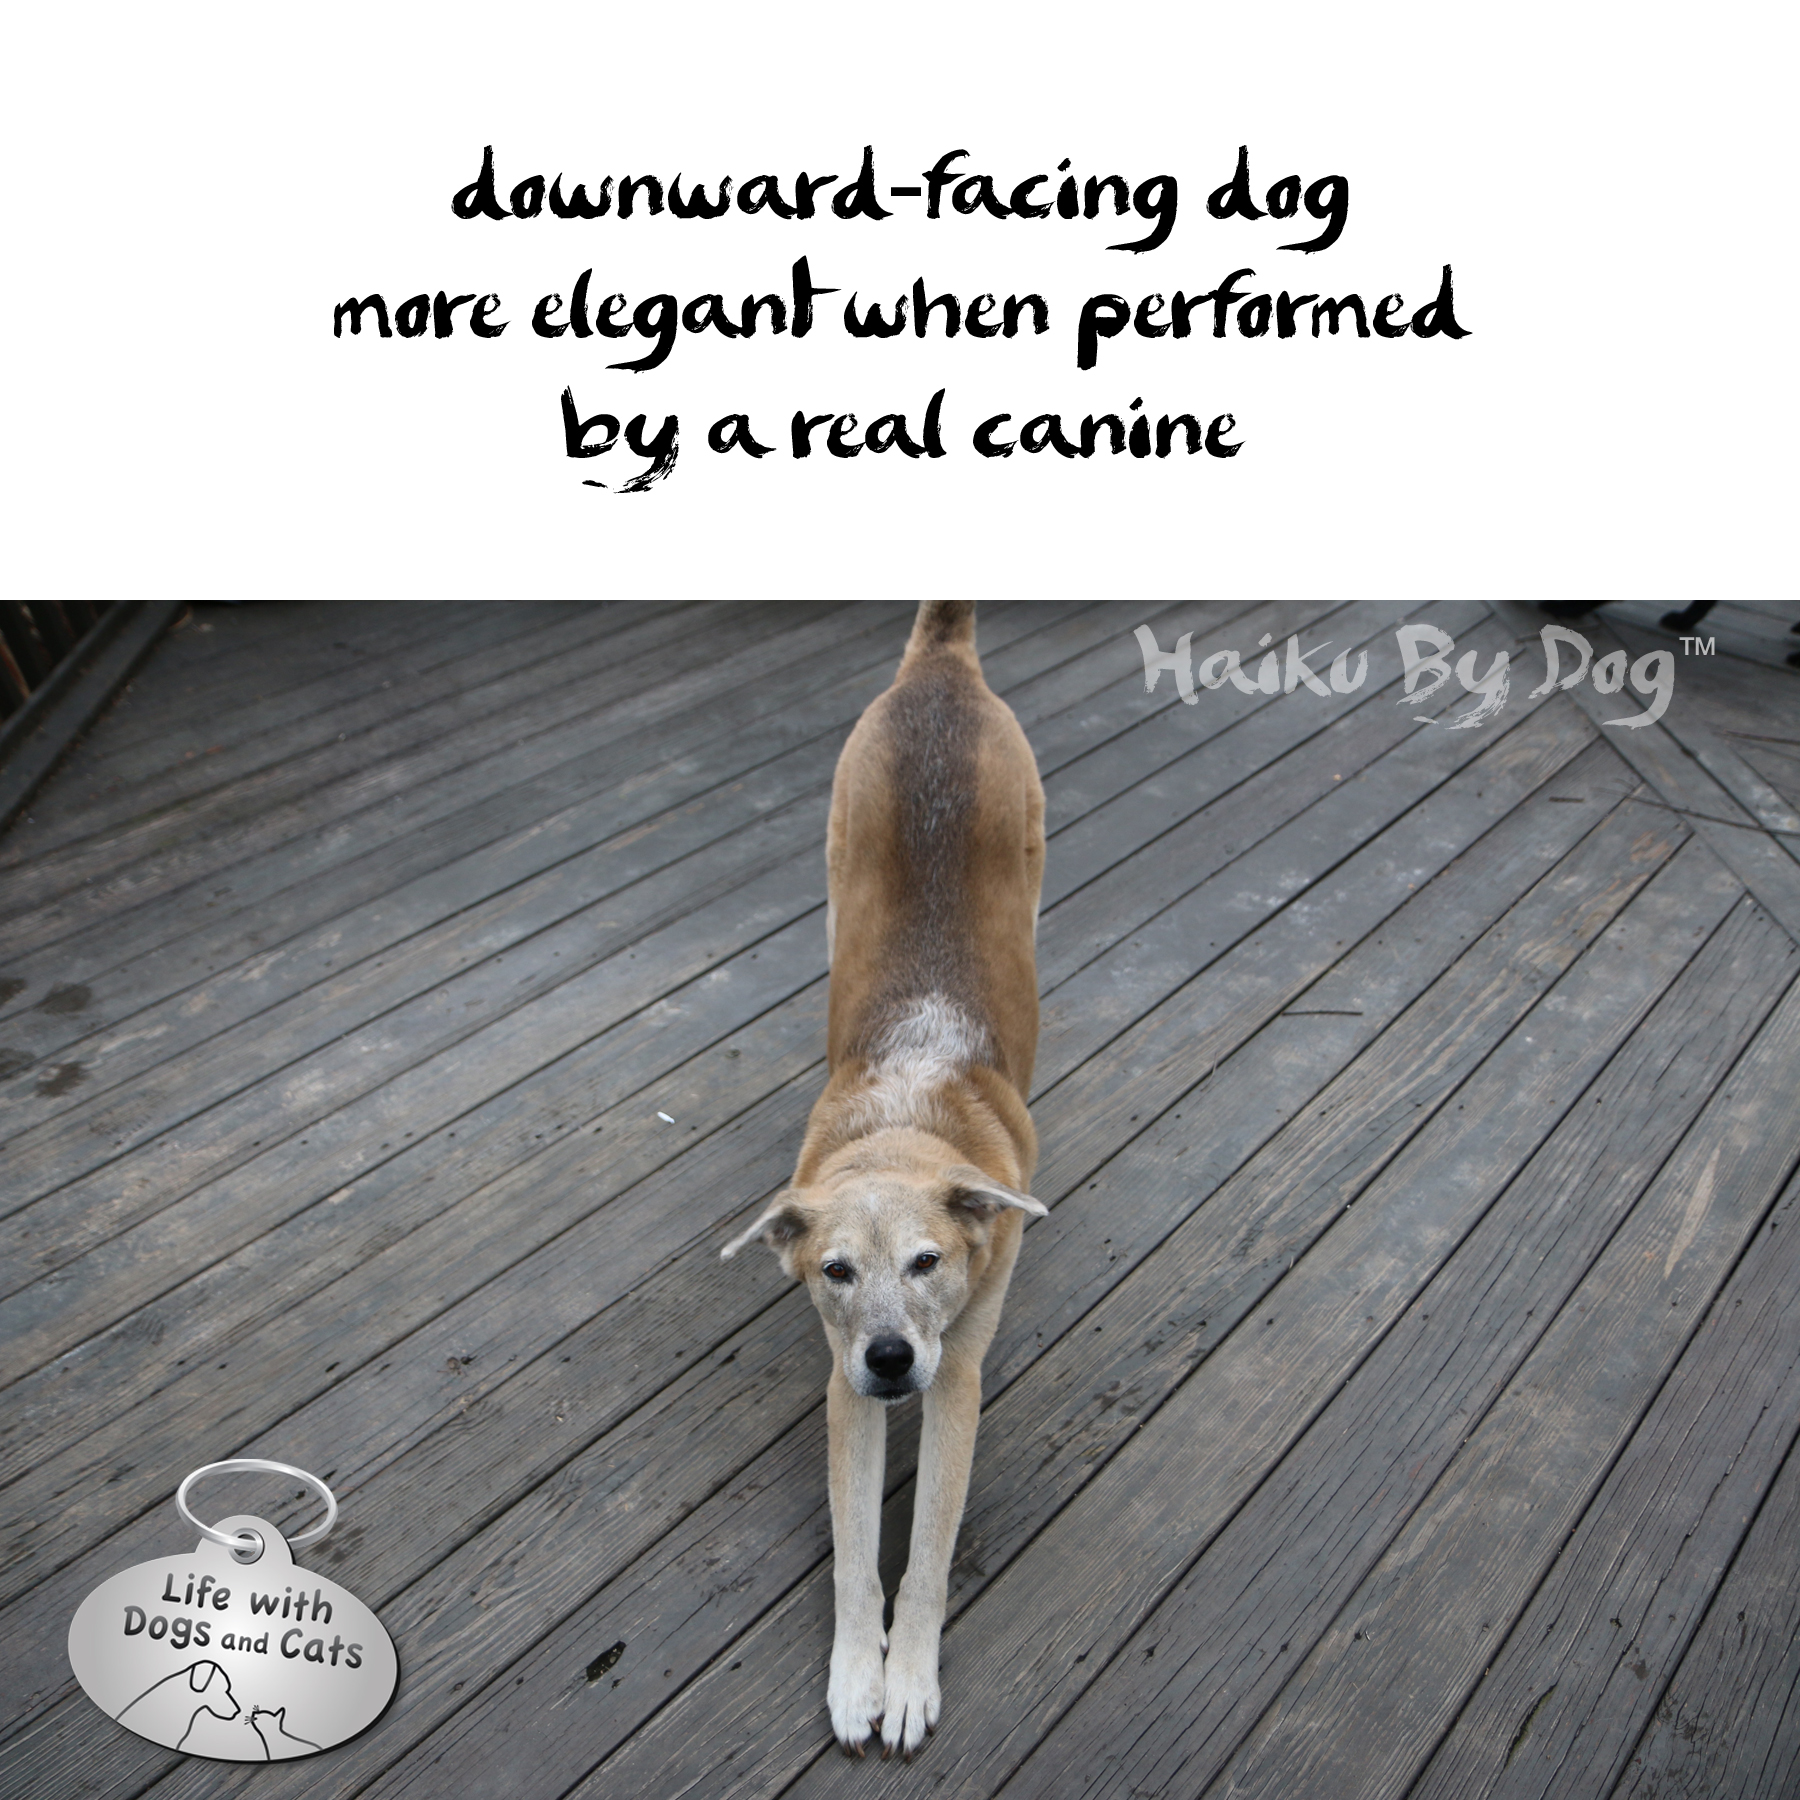 downward-facing dog / more elegant when performed / by a real canine #HaikuByDog